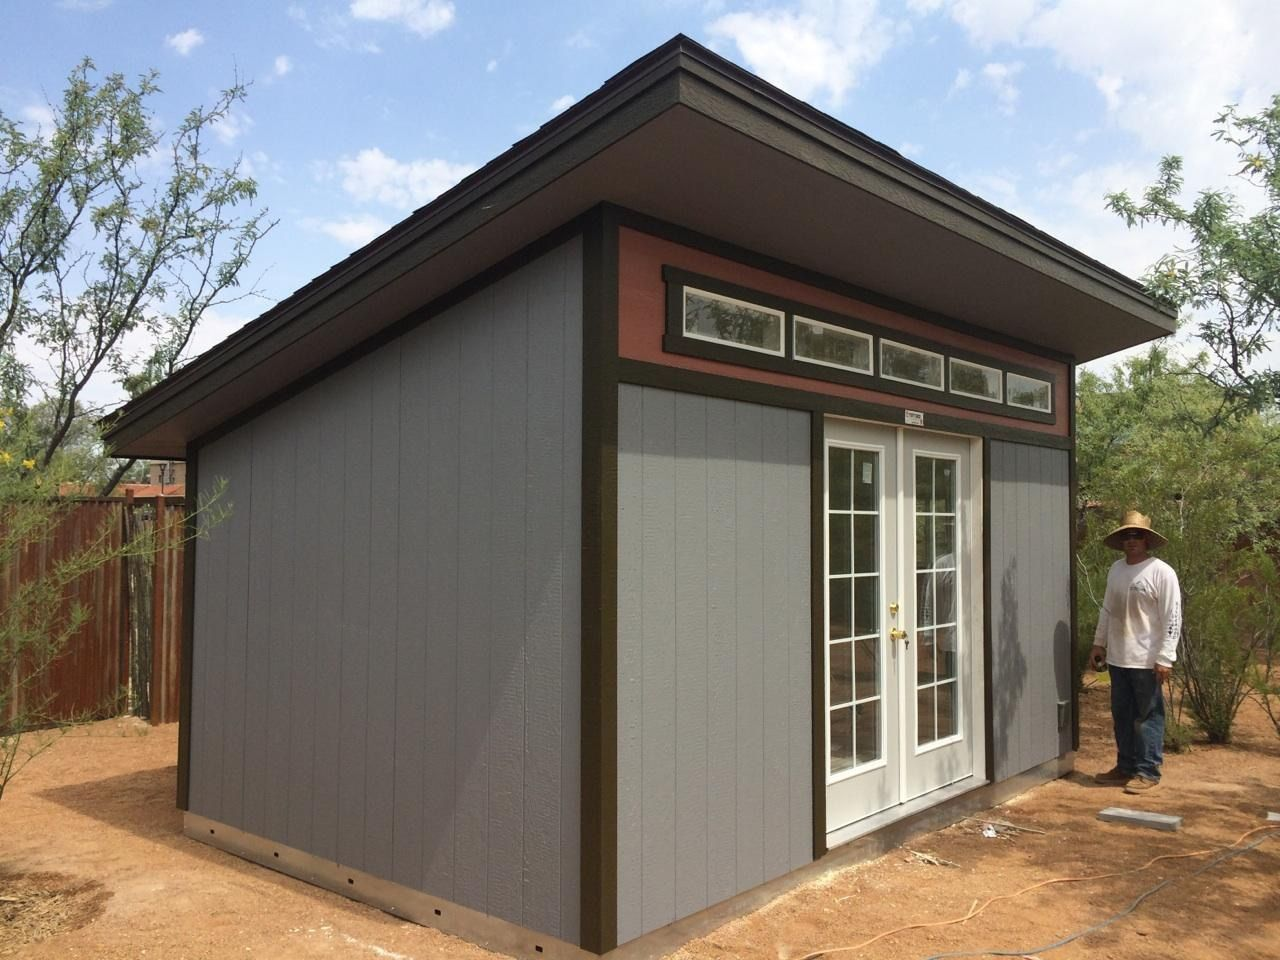 Storage Shed Construction Our Products Tuff Shed Shed Roof Design Modern Shed Tuff Shed